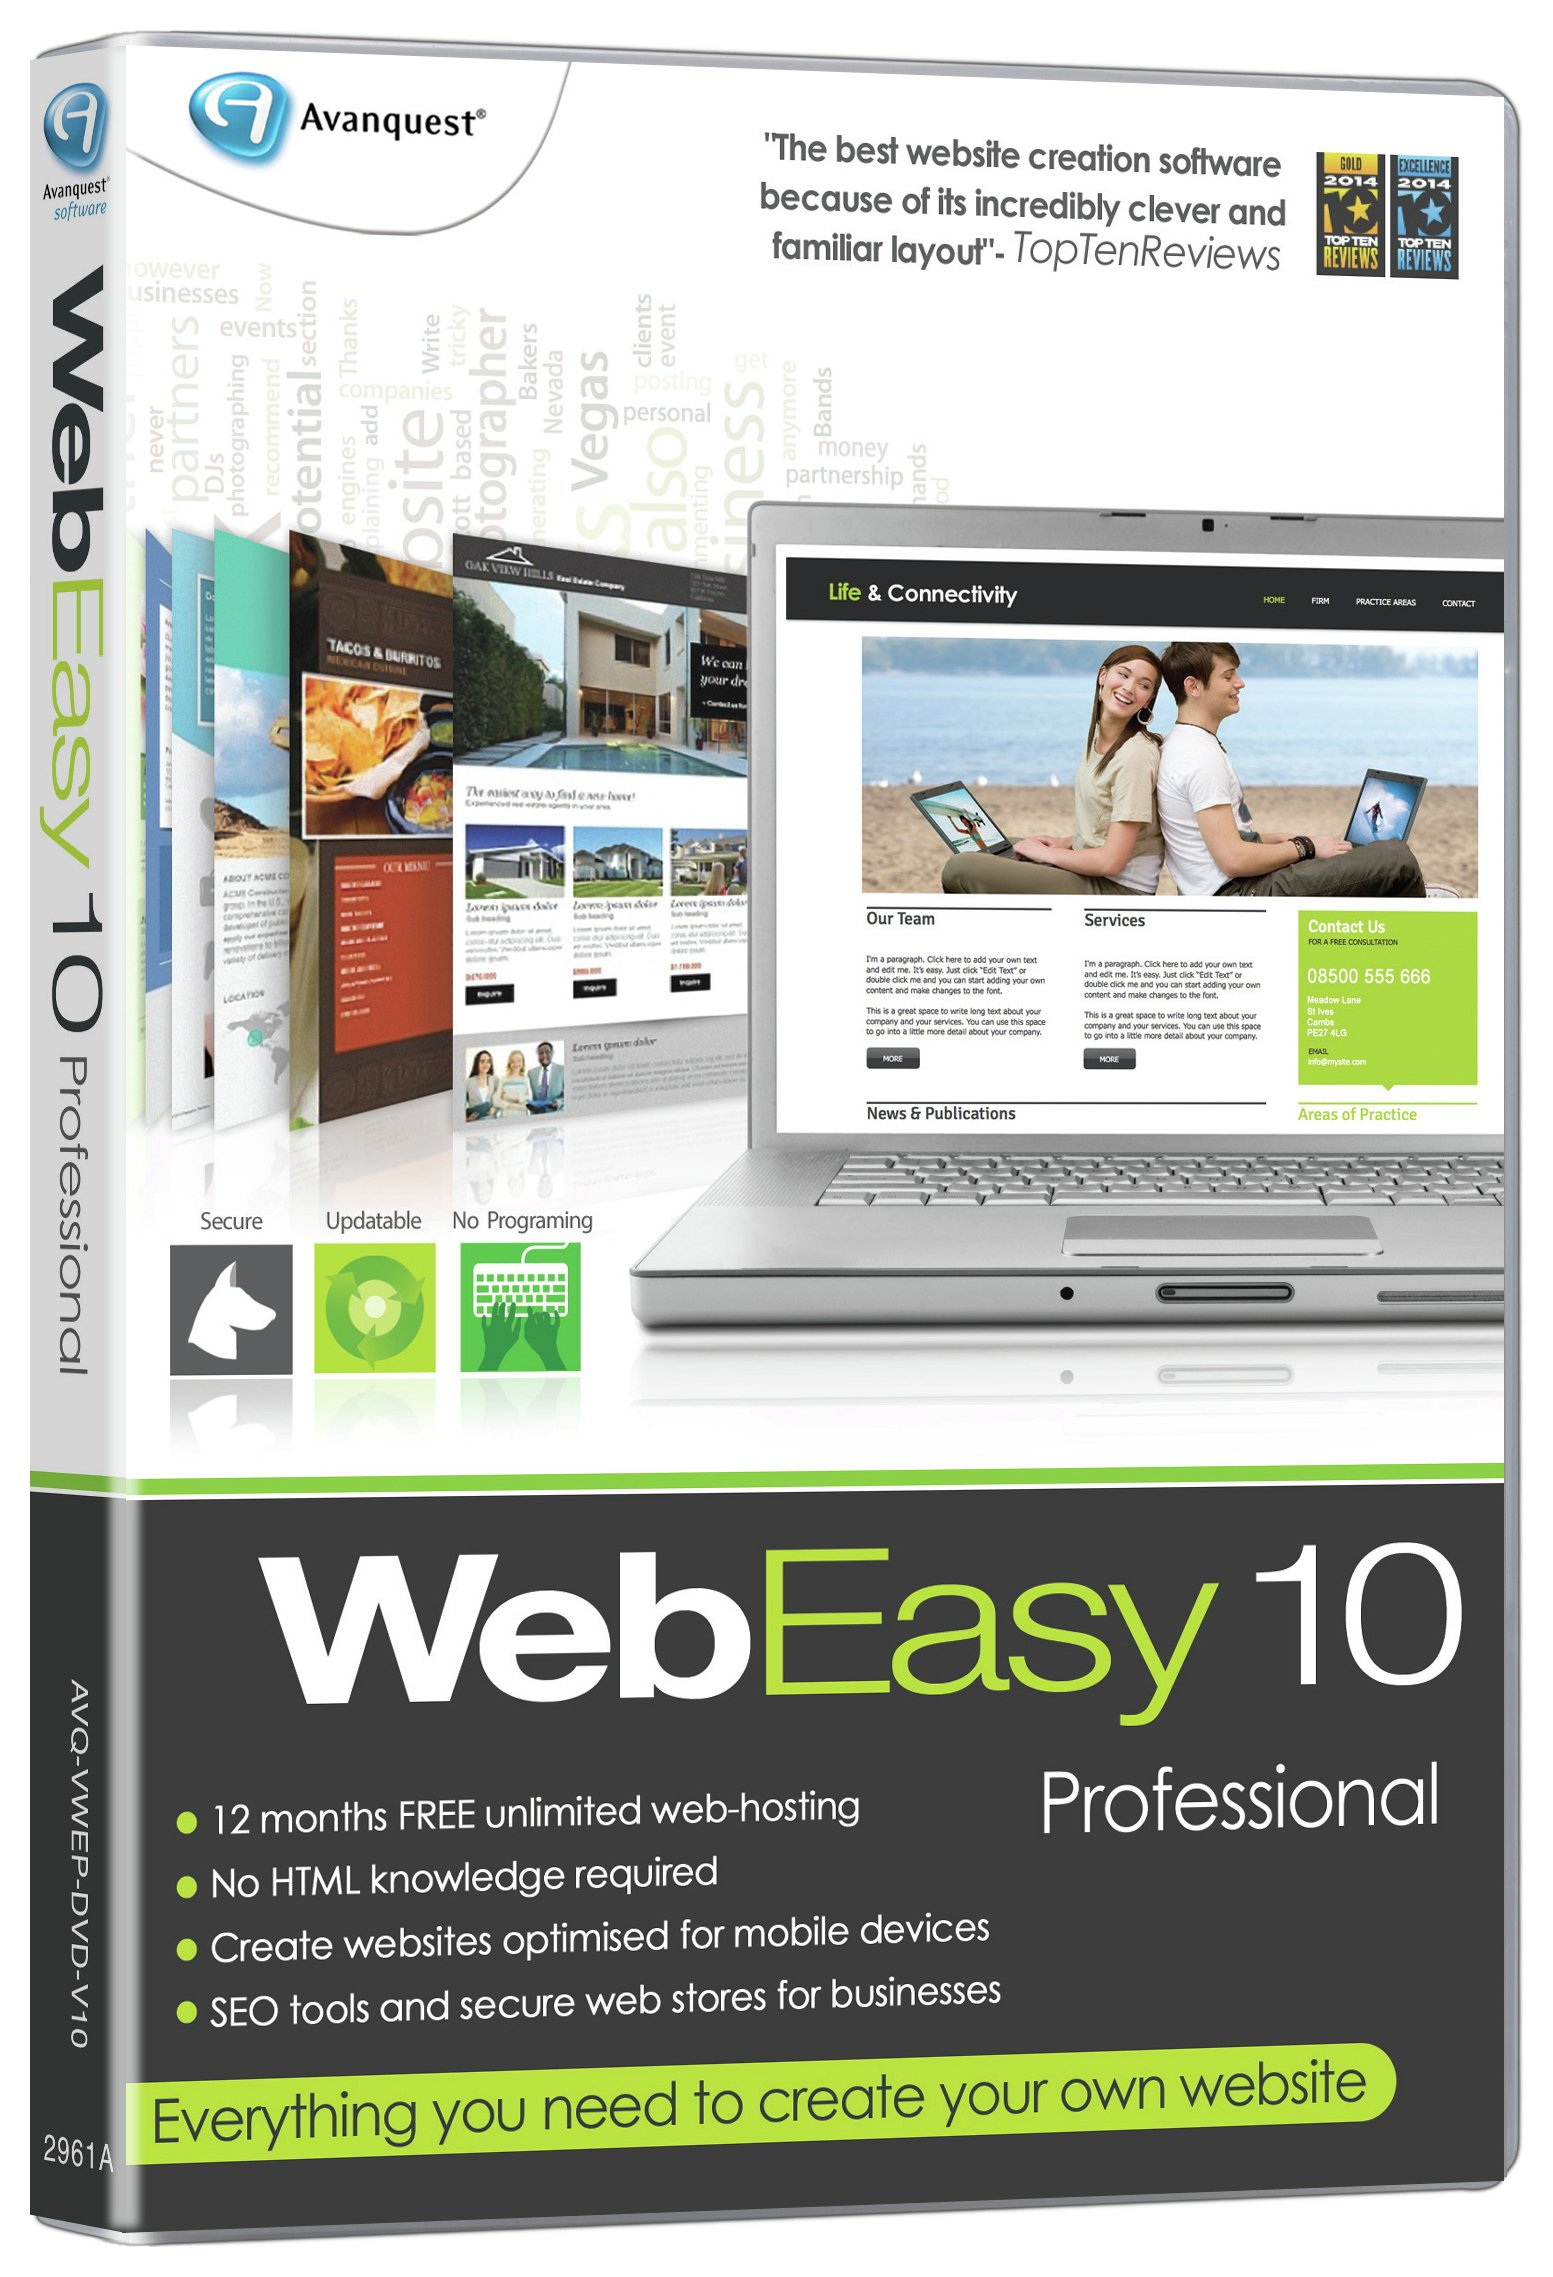 Image of Avanquest - WebEasy Professional 10 Website Creation Software